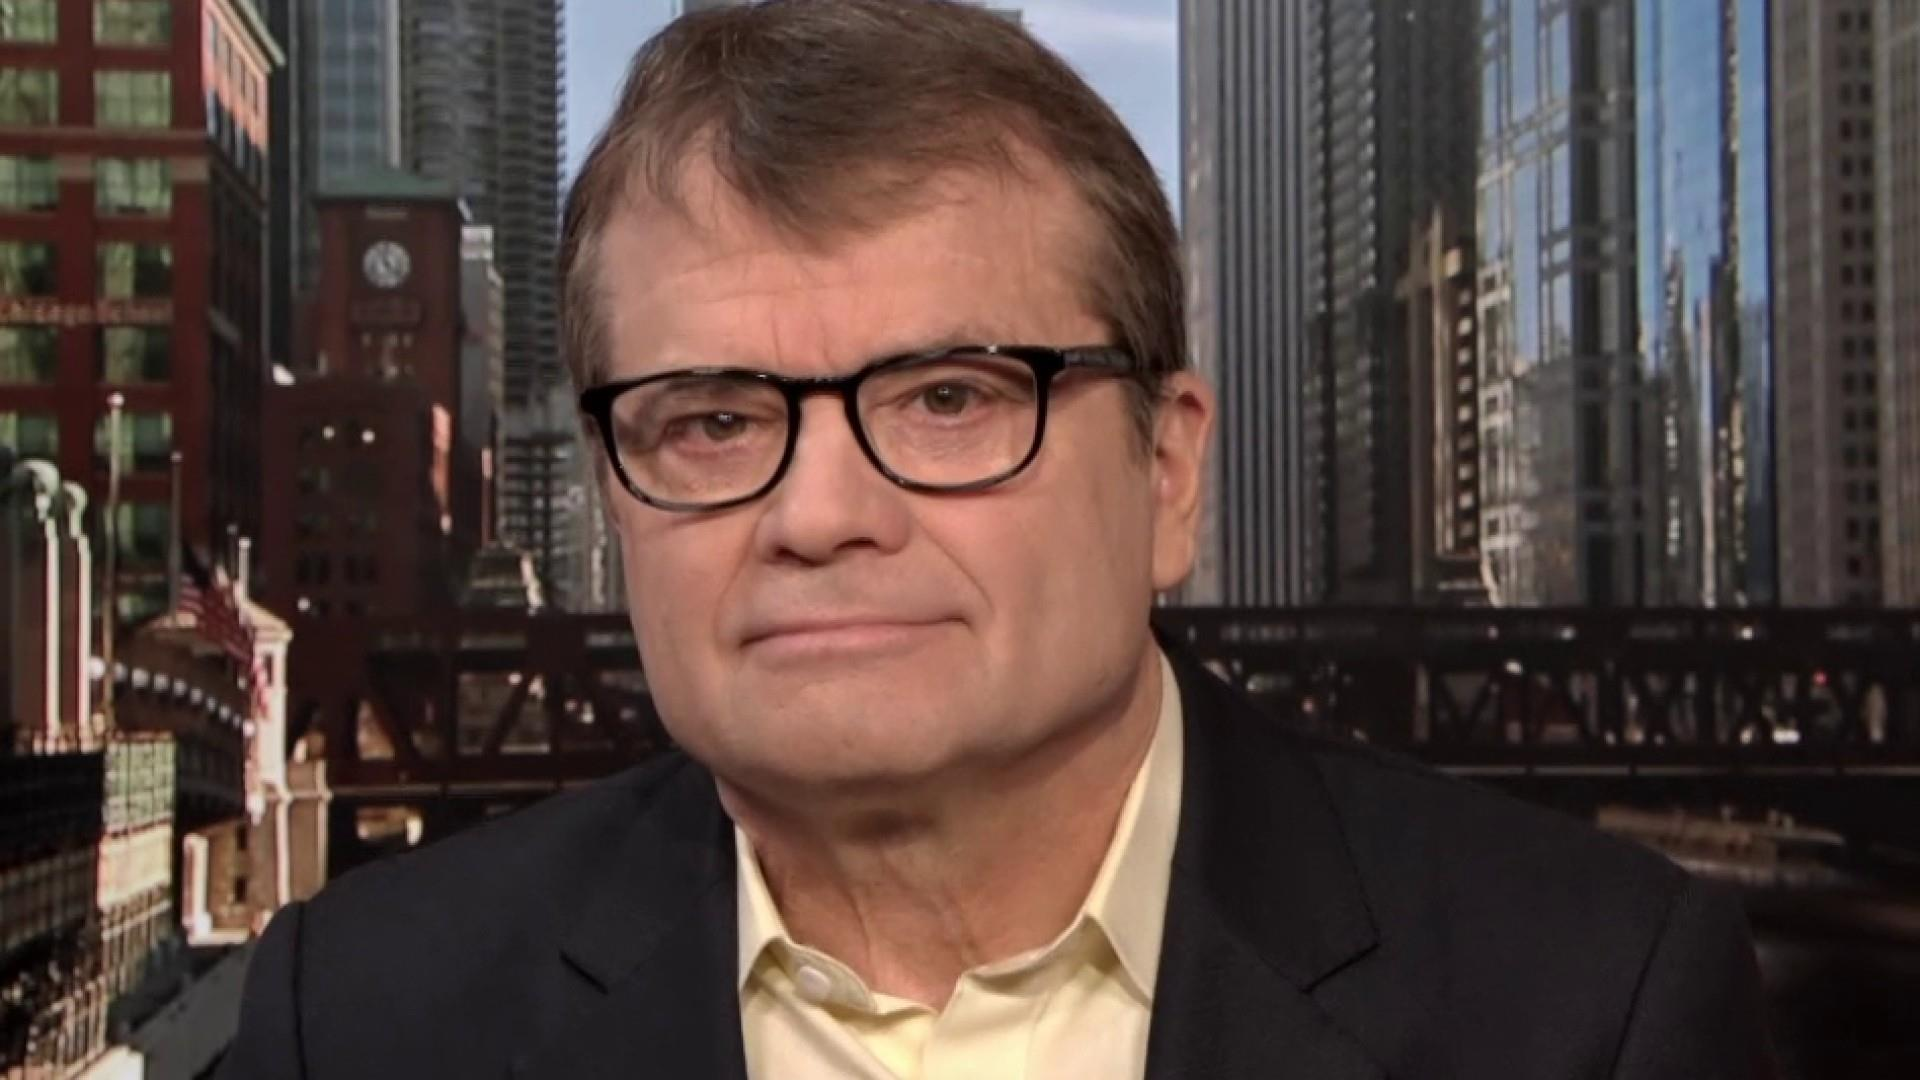 Rep. Quigley: Trump has 'never been held accountable for anything he's done wrong'